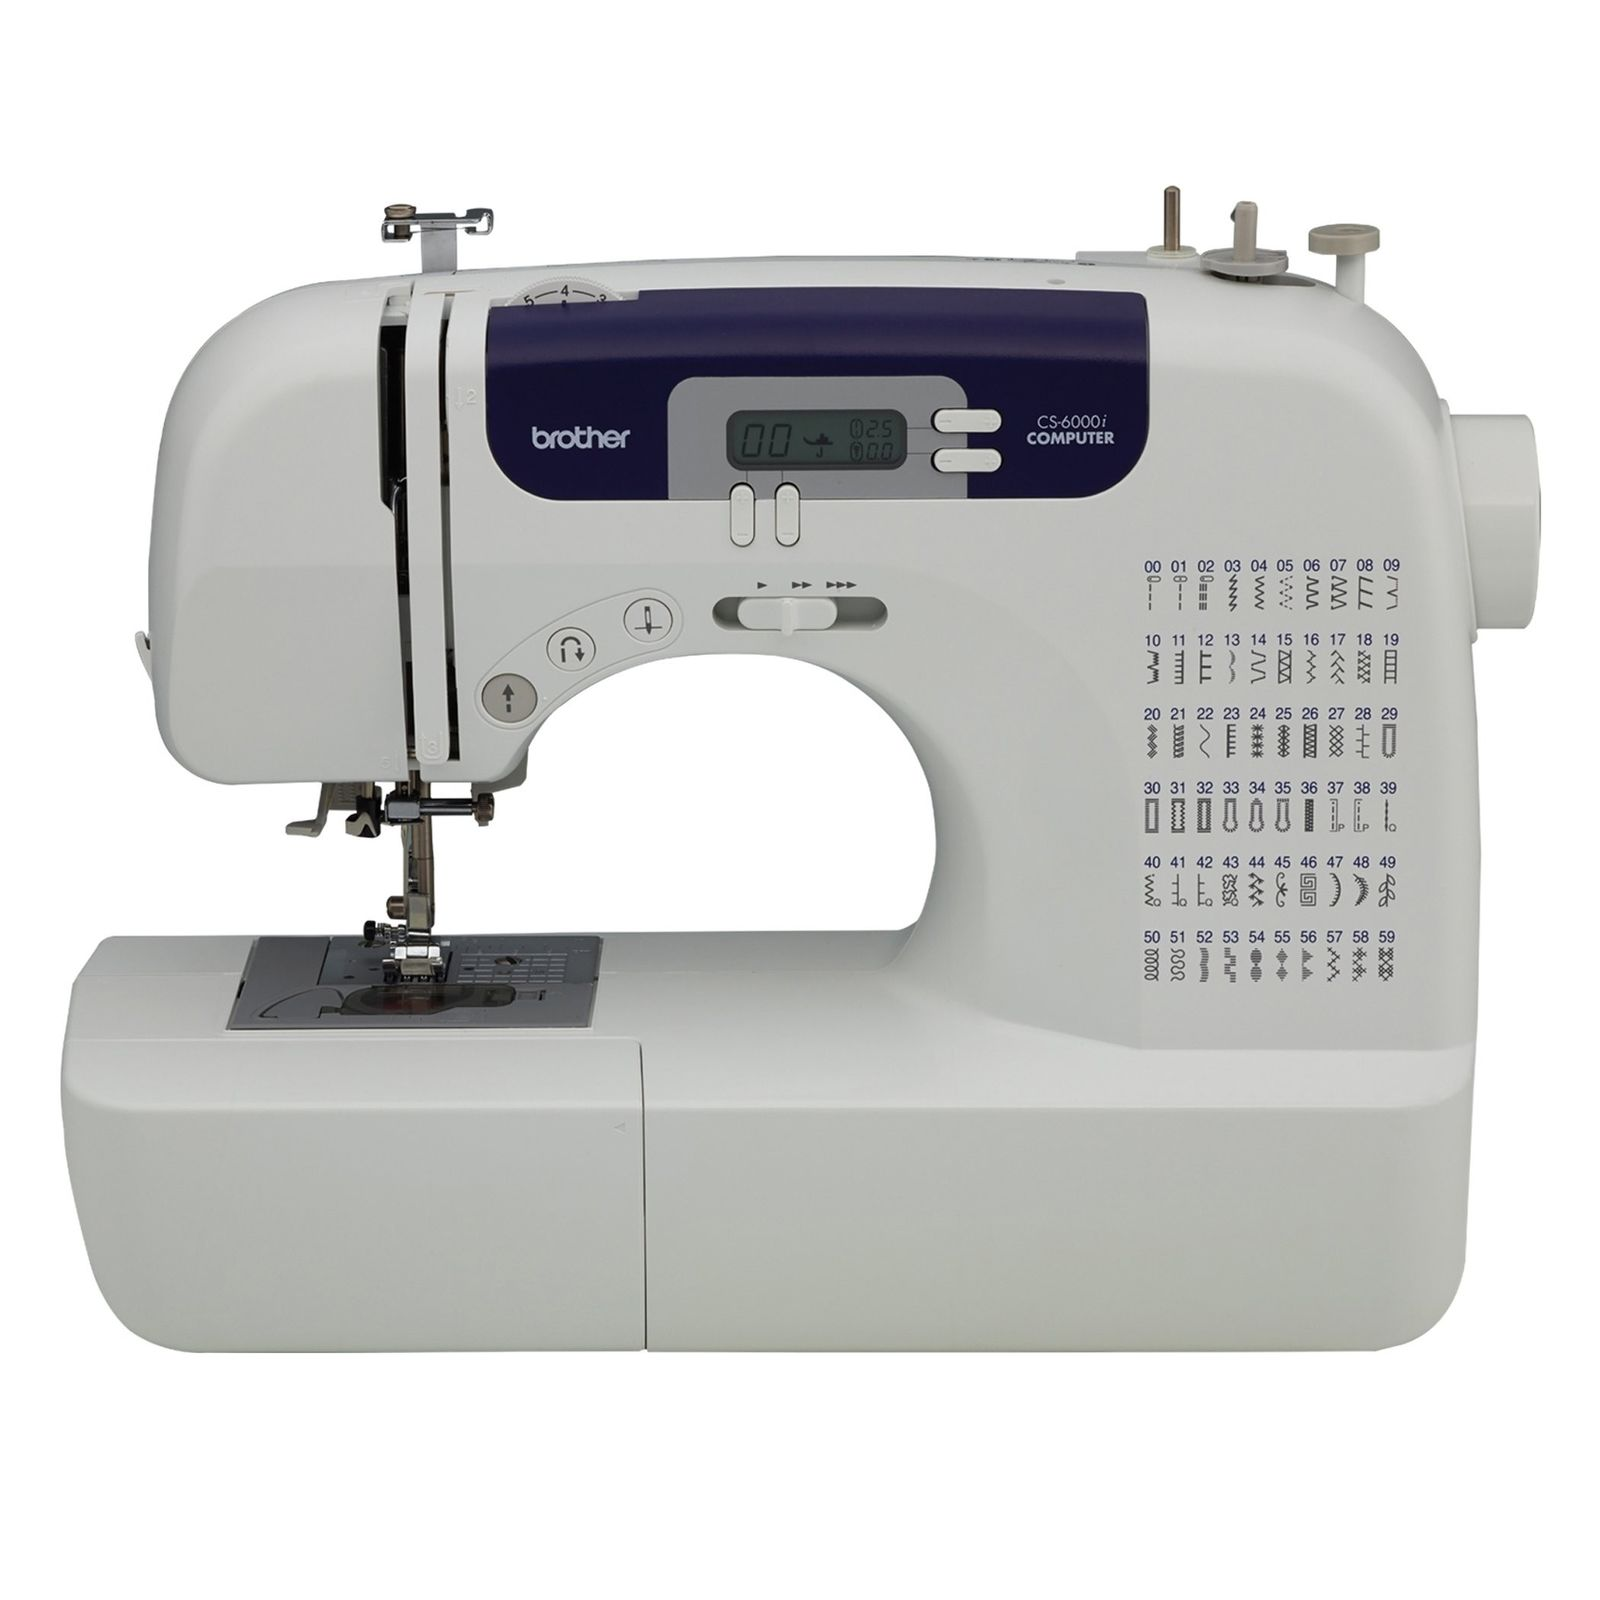 Best Sewing Machine Reviews 2018: Top Brands & Deals for ...